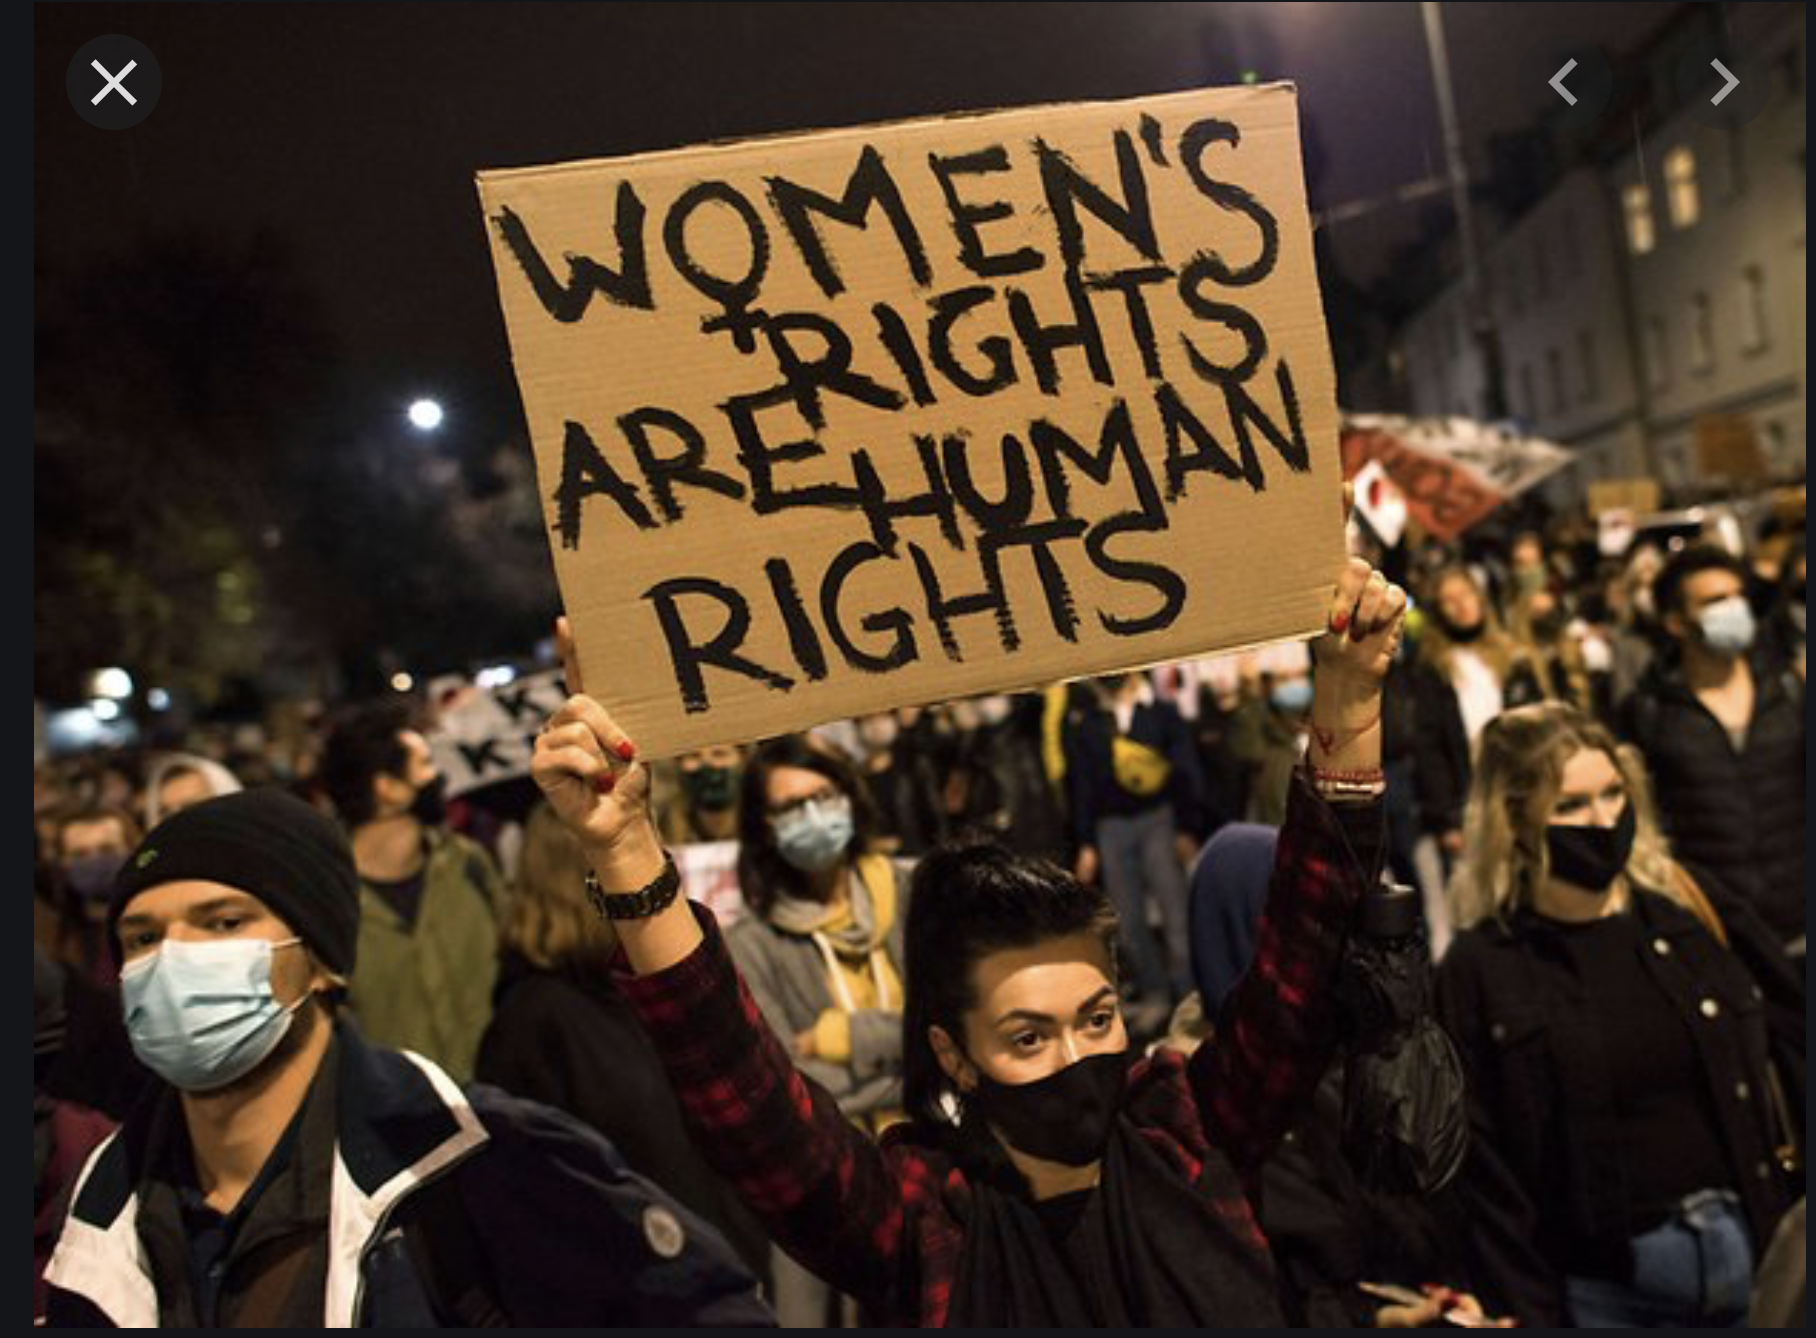 Bild women's rights are human rights Polen